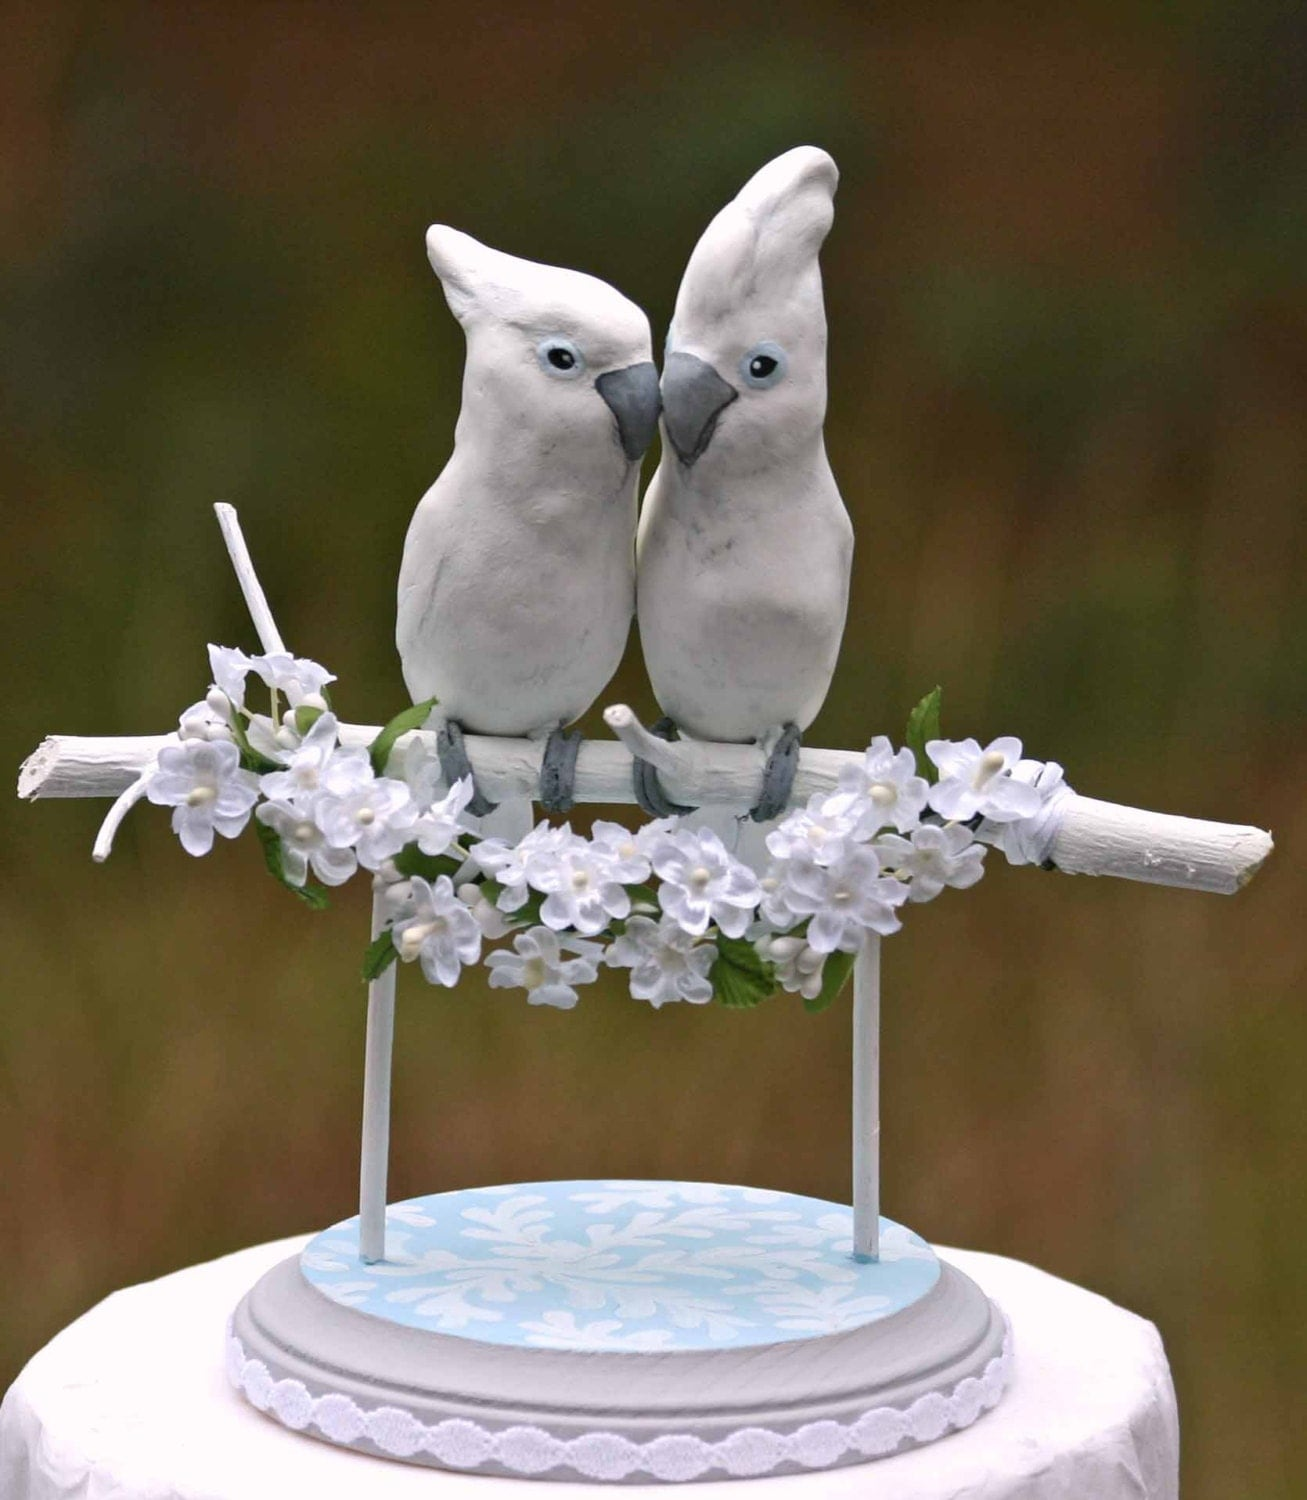 Cake Toppers Etsy Uk : Handmade Cockatoo Wedding Cake Topper by TeaOlive on Etsy